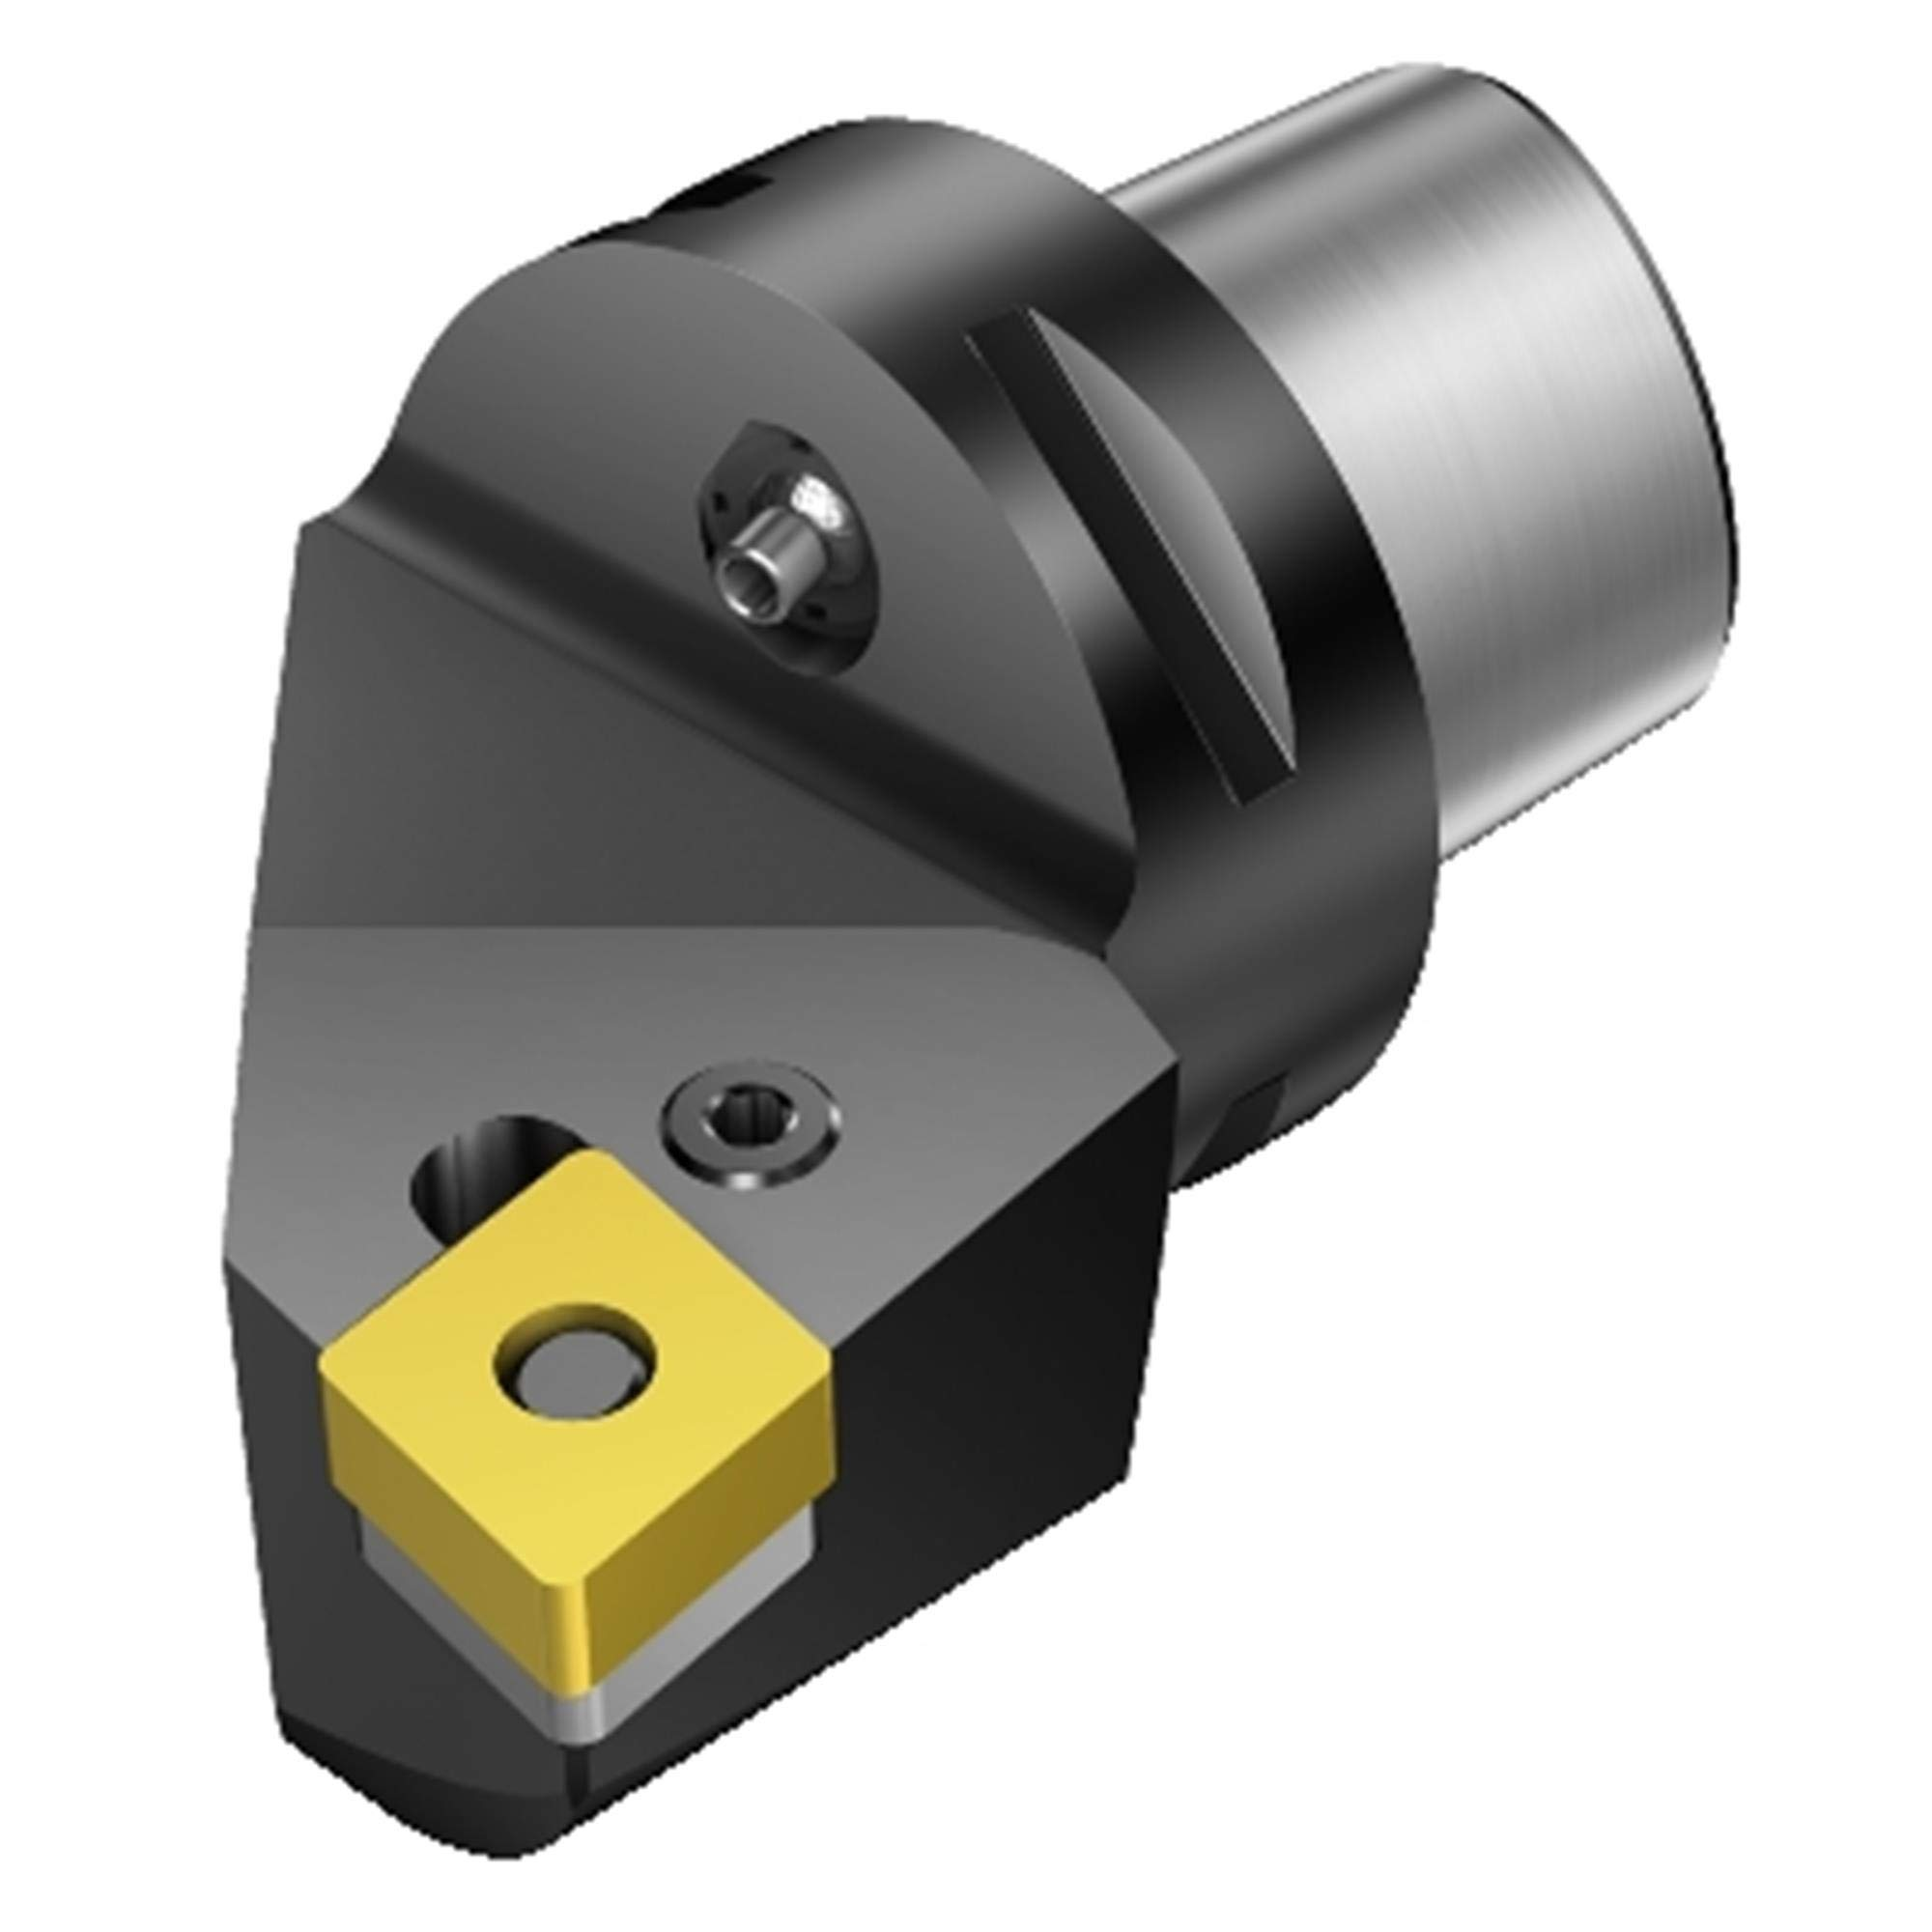 55 mm Shank Diameter Right Hand CNMG 12 04 08 Master Insert 80 mm Functional Length Cx-PCLNR//L Tool 55 mm Functional Width Sandvik Coromant C8-PCLNR-55080-12 T-Max P Cutting Unit for Turning